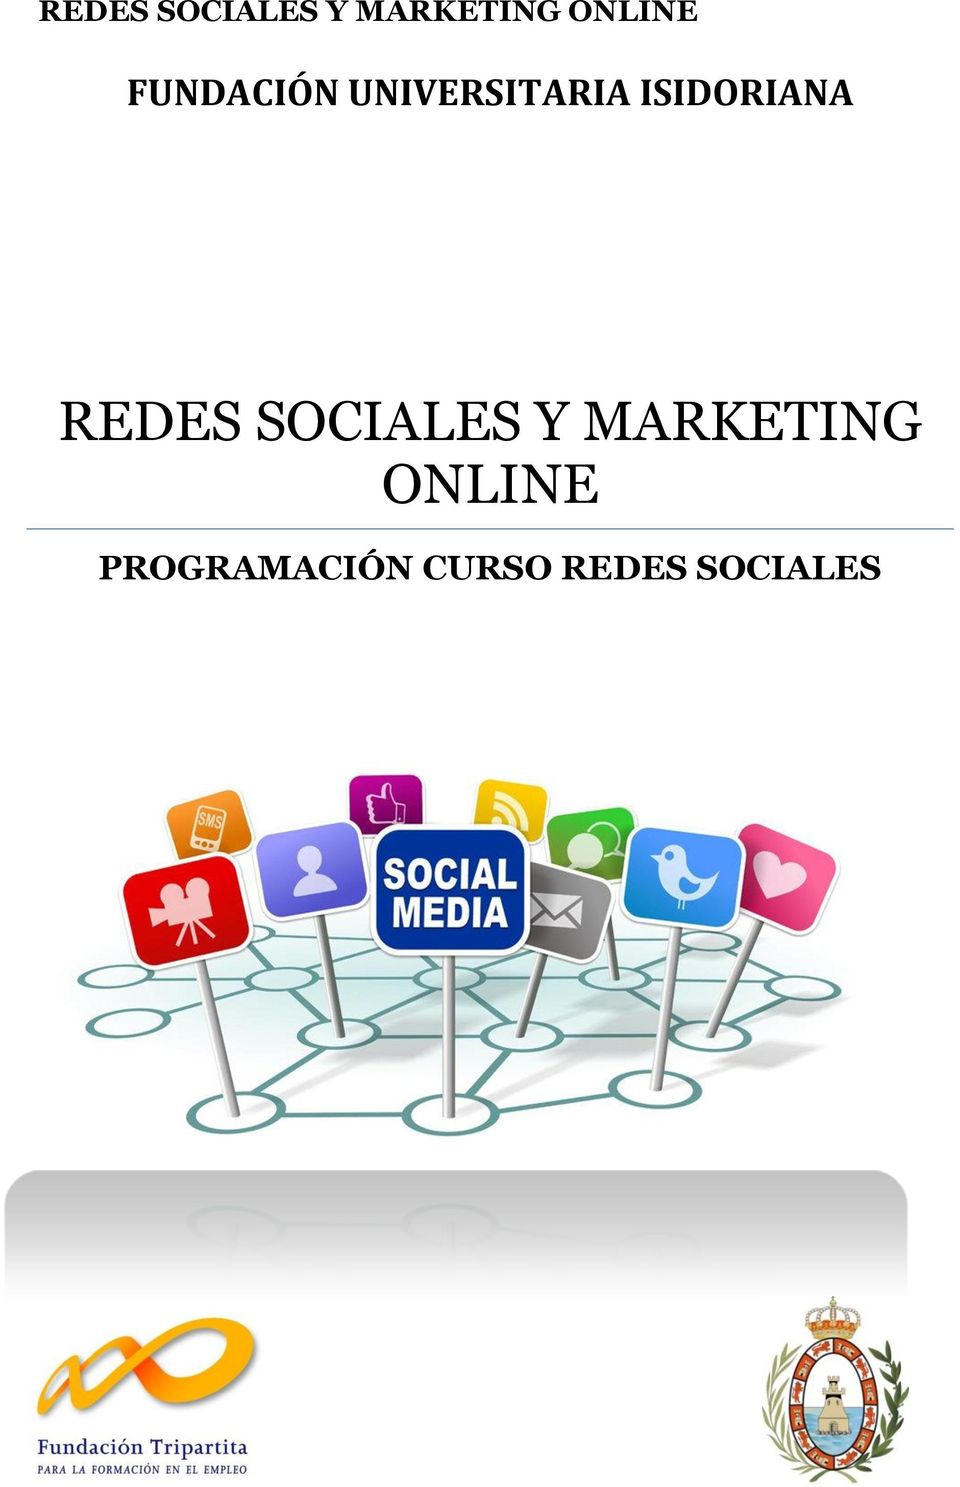 Y MARKETING ONLINE